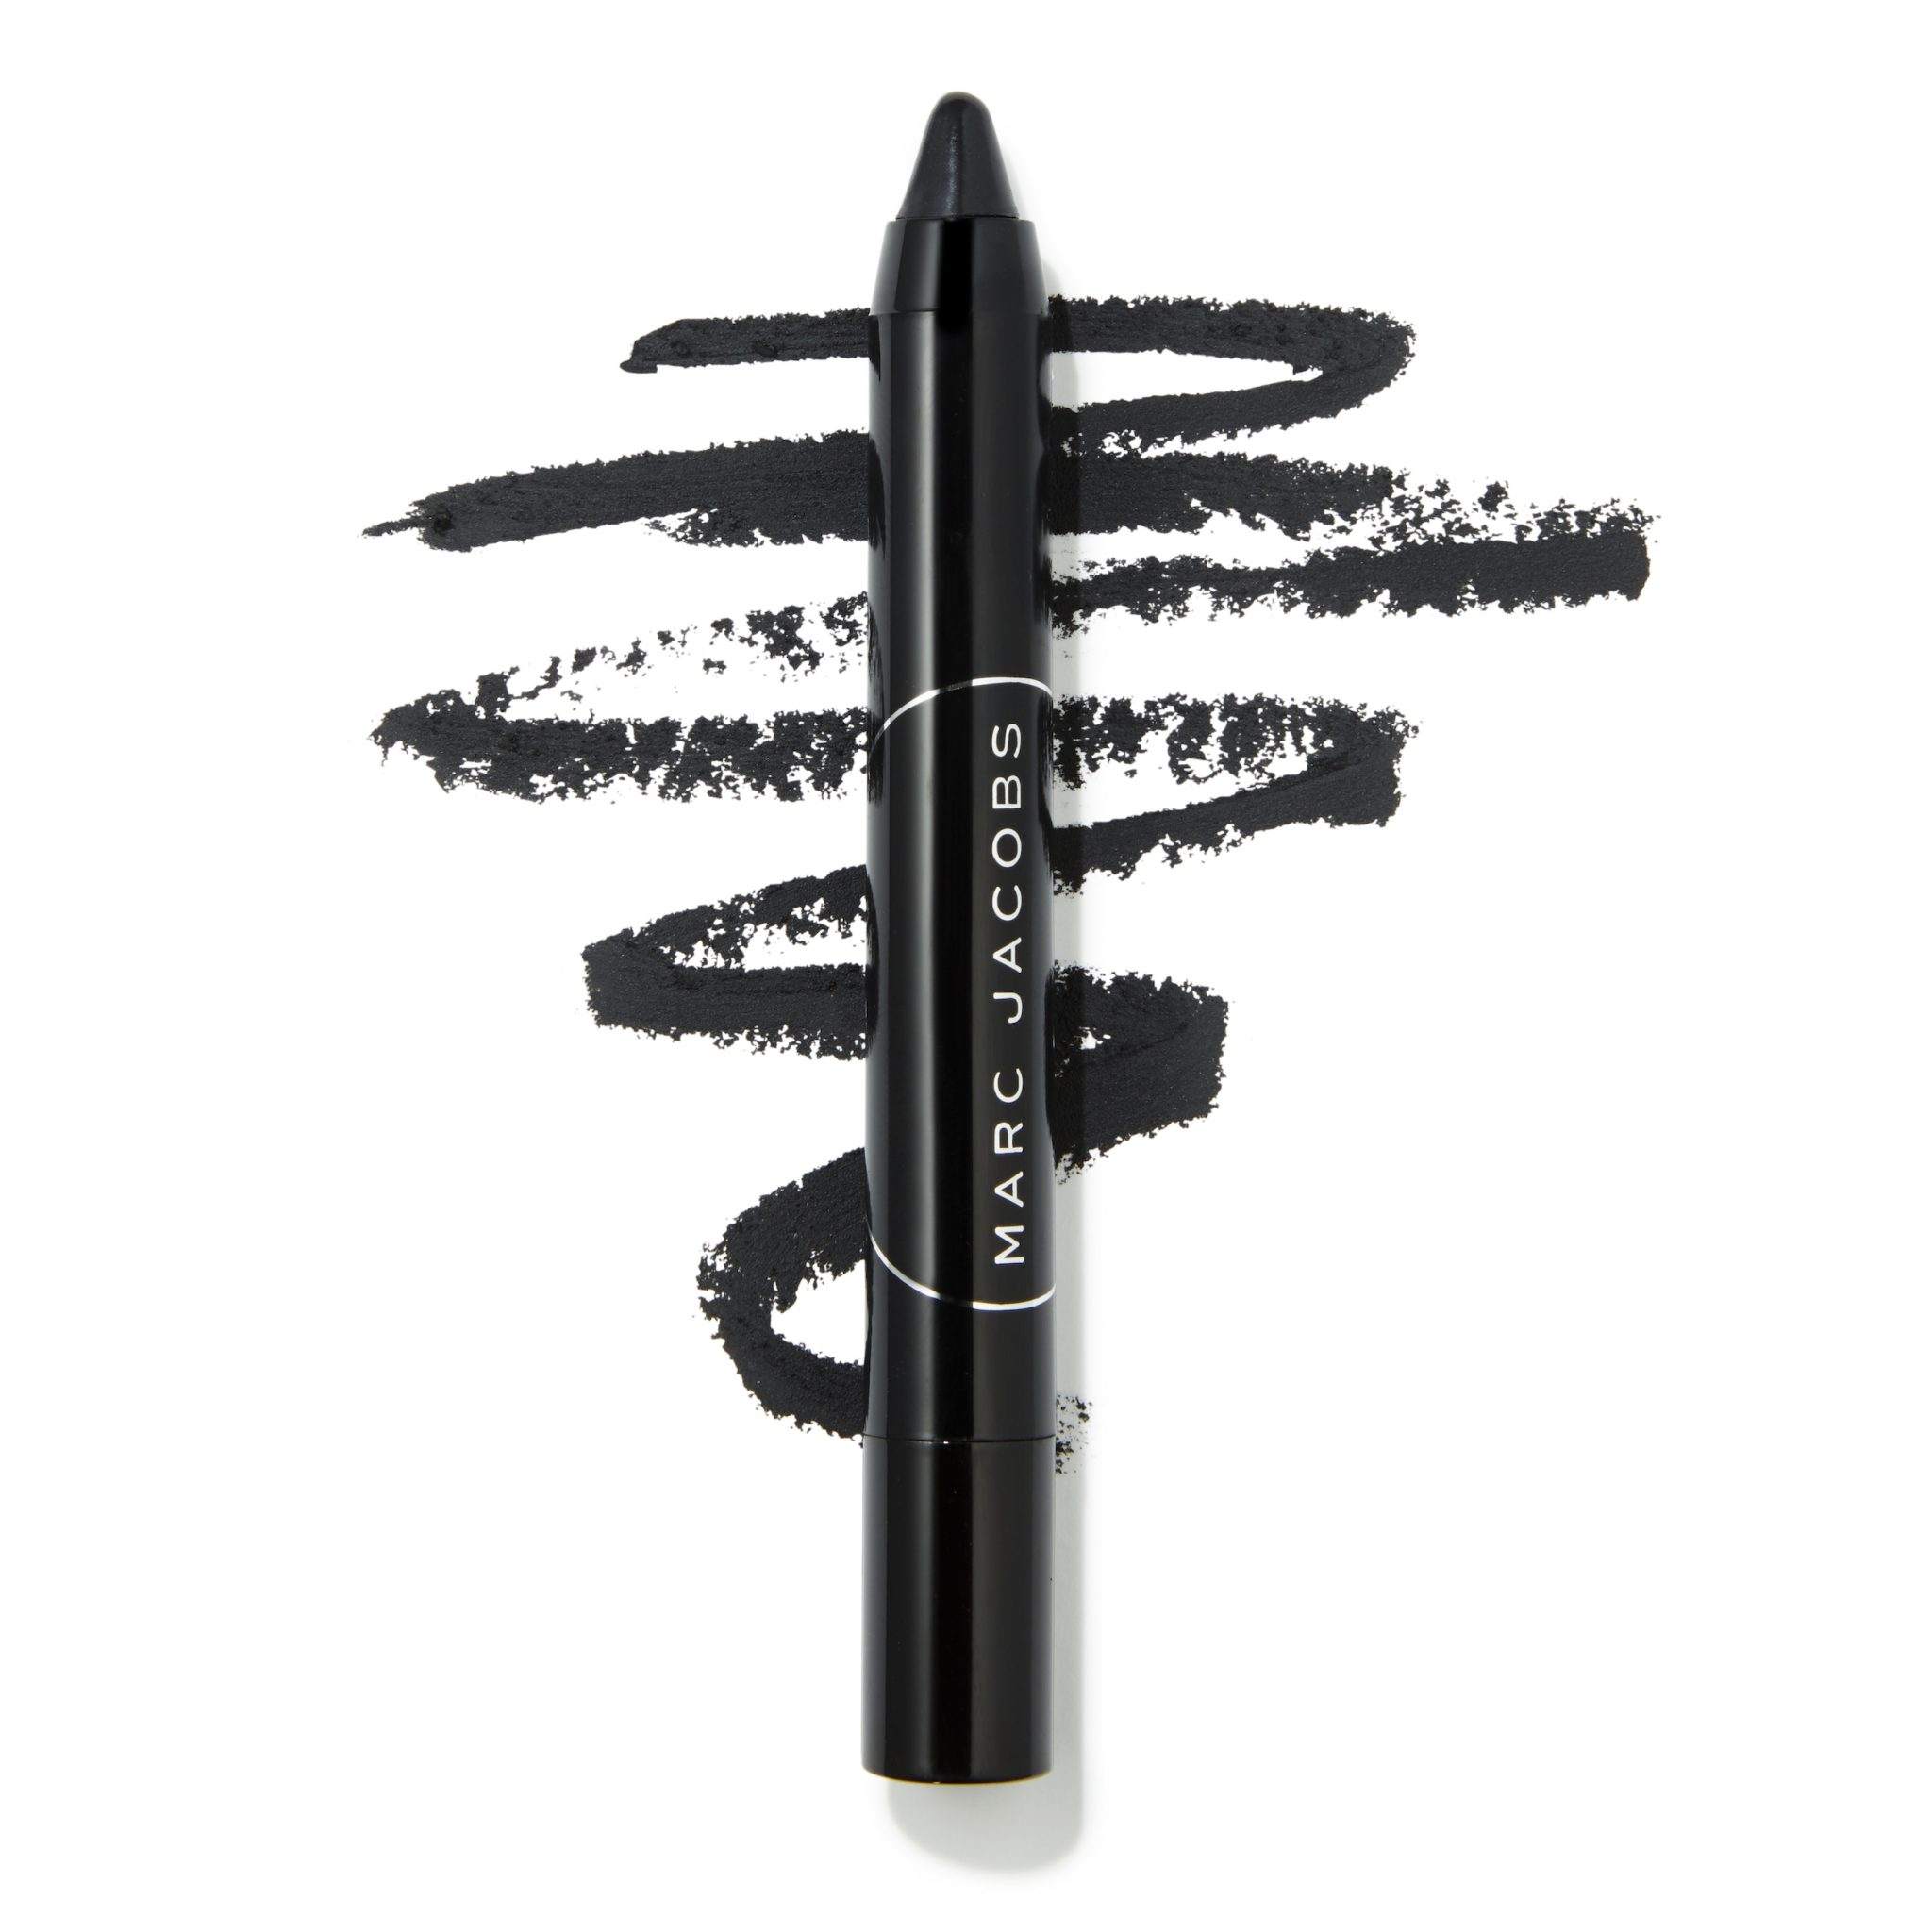 Marc Jacobs Beauty Le Marc Liquid Lip Crayon - Blacquer Swatch - AED 125